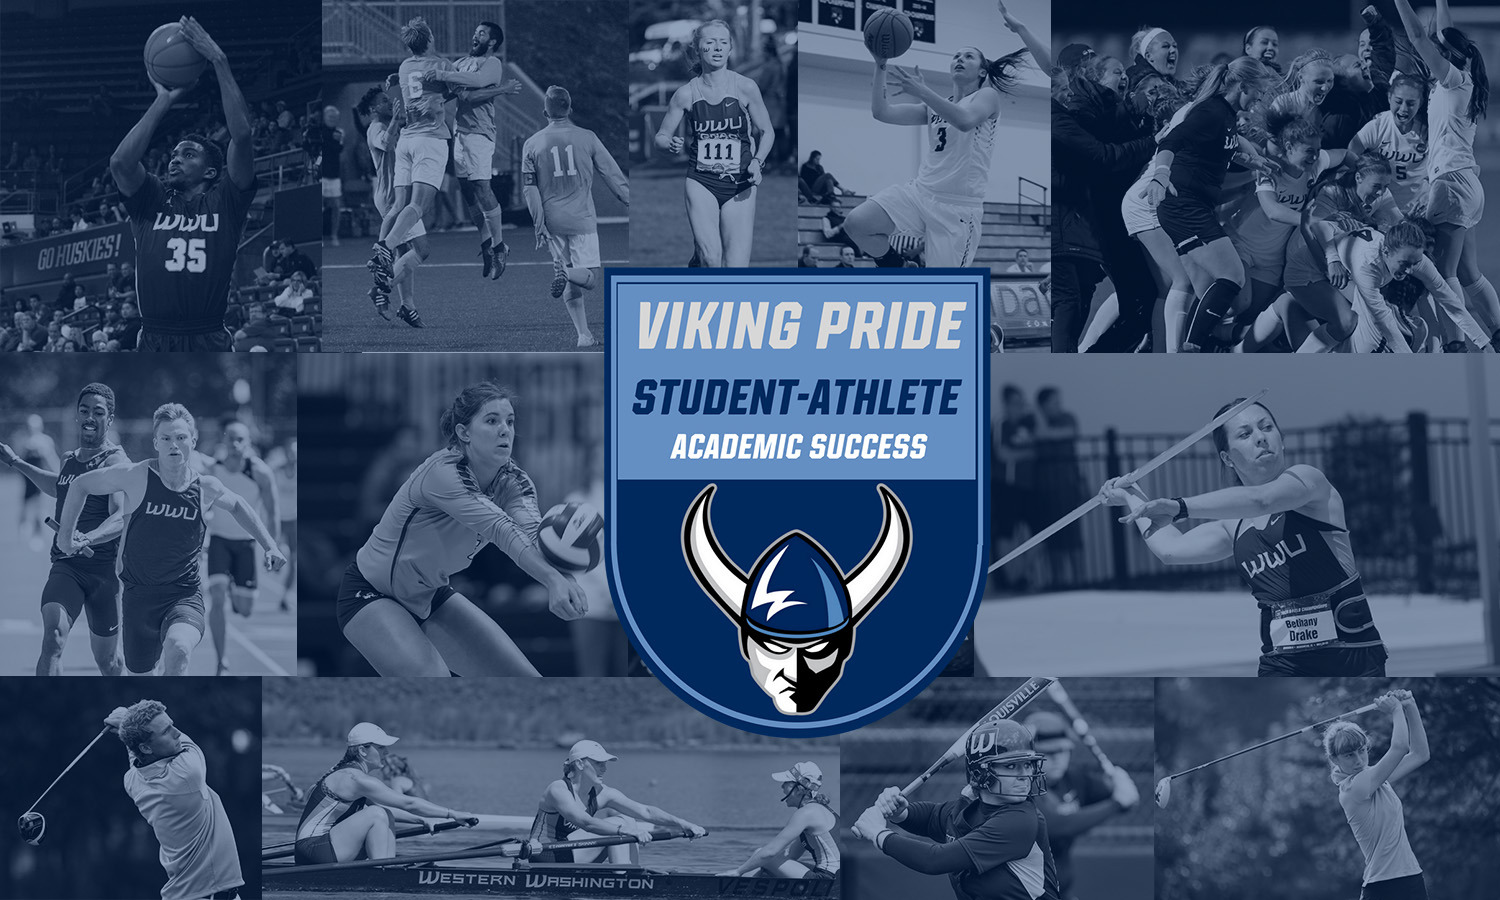 WWU Student-Athletes Graduating at High Rate - Western ...